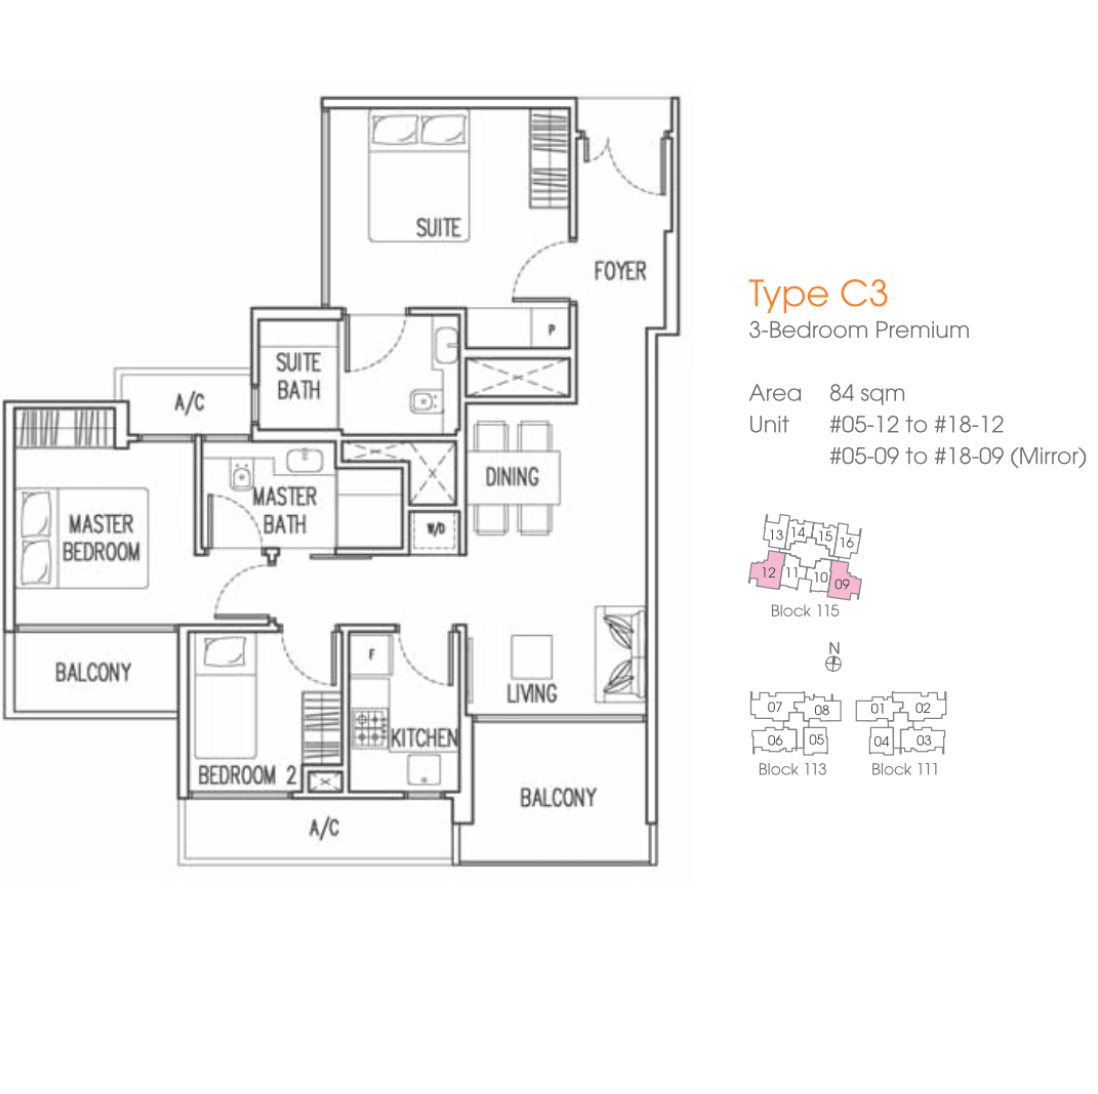 Sg Property - Trilive - Floor Plan C3 84sqm 3-Bedroom Premium